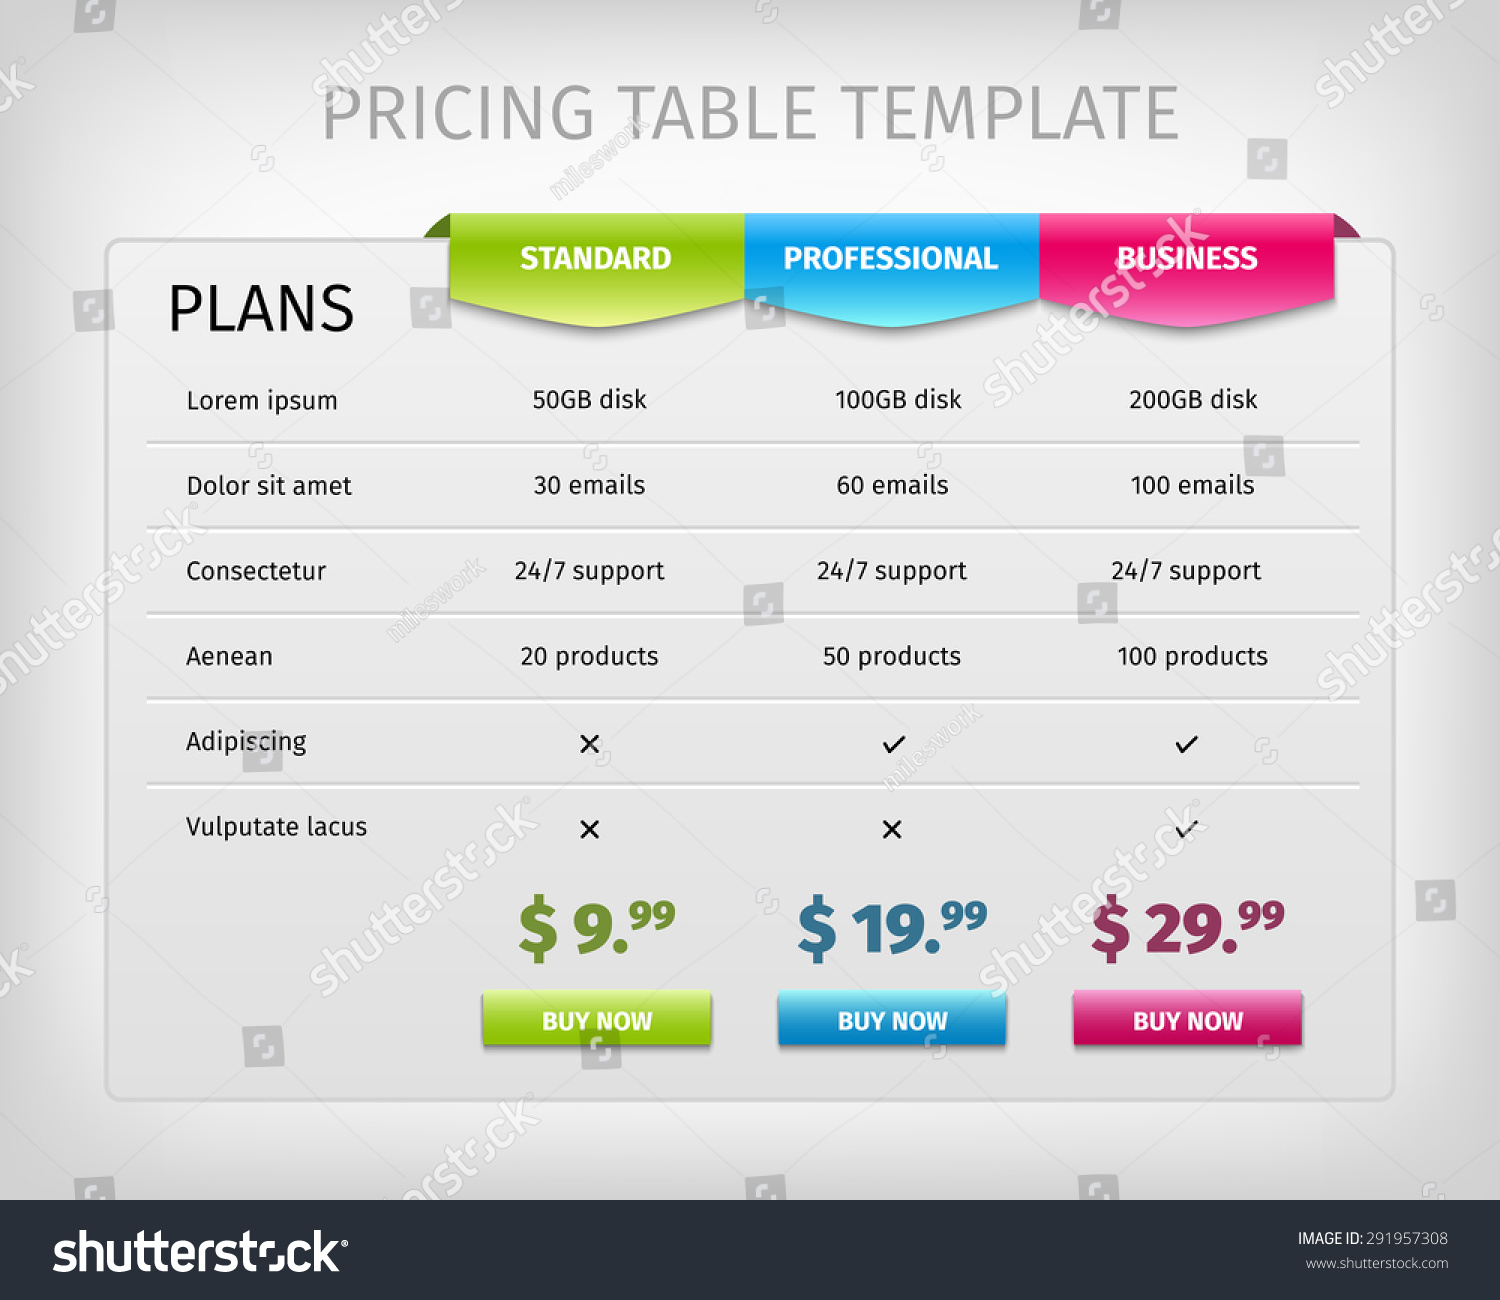 Pricing Table: Web Pricing Table Template Business Plan Stock Vector